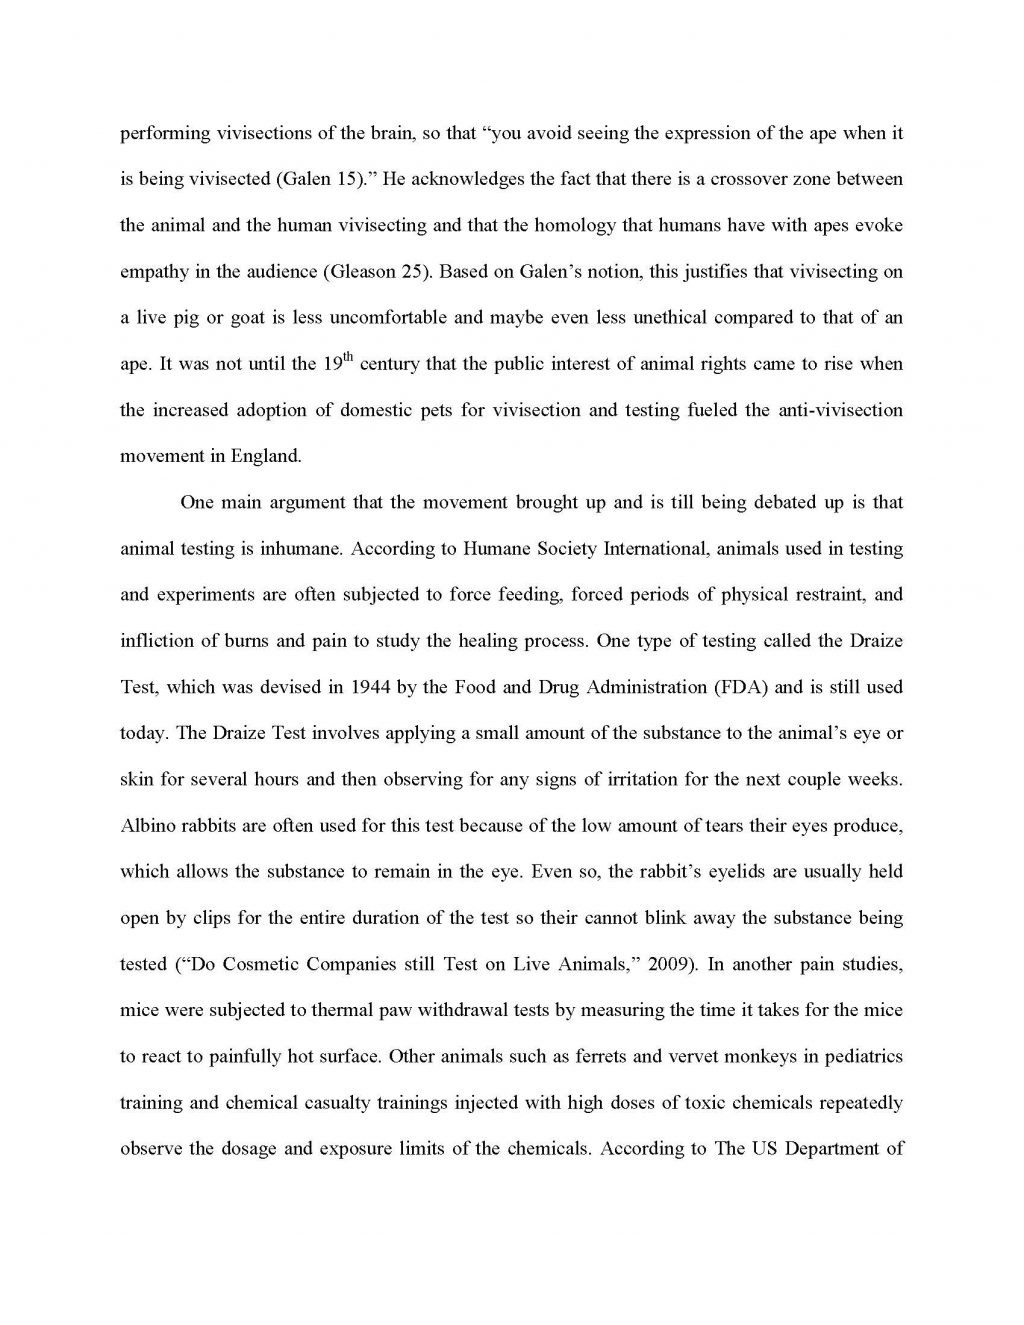 023 Animal Testing Argumentative Essay Title Paper Titles Outline Cosmetic Persuasive20 1024x1325 Persuasive Research Topics About Beautiful Animals Large